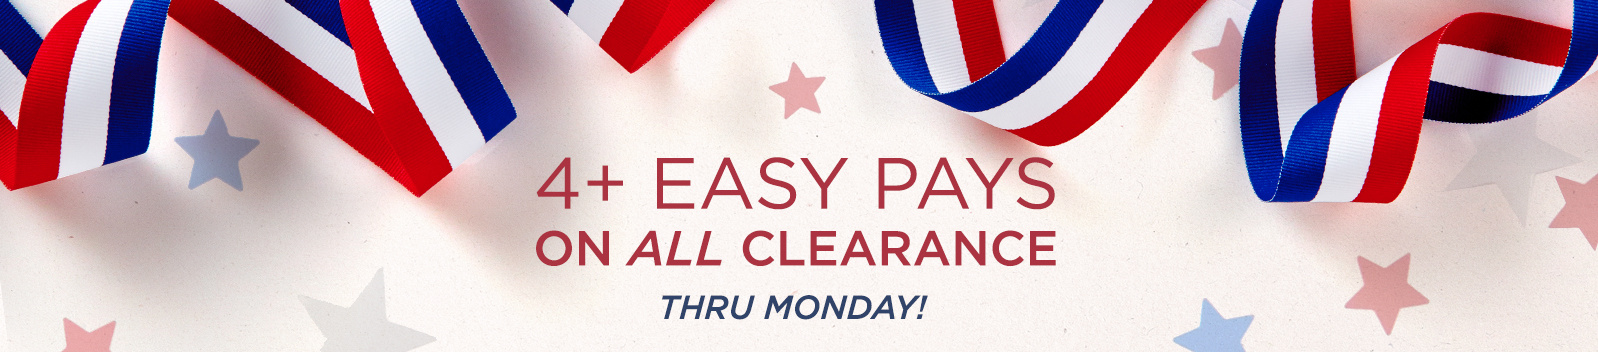 4+ Easy Pays on ALL Clearance Thru Monday!